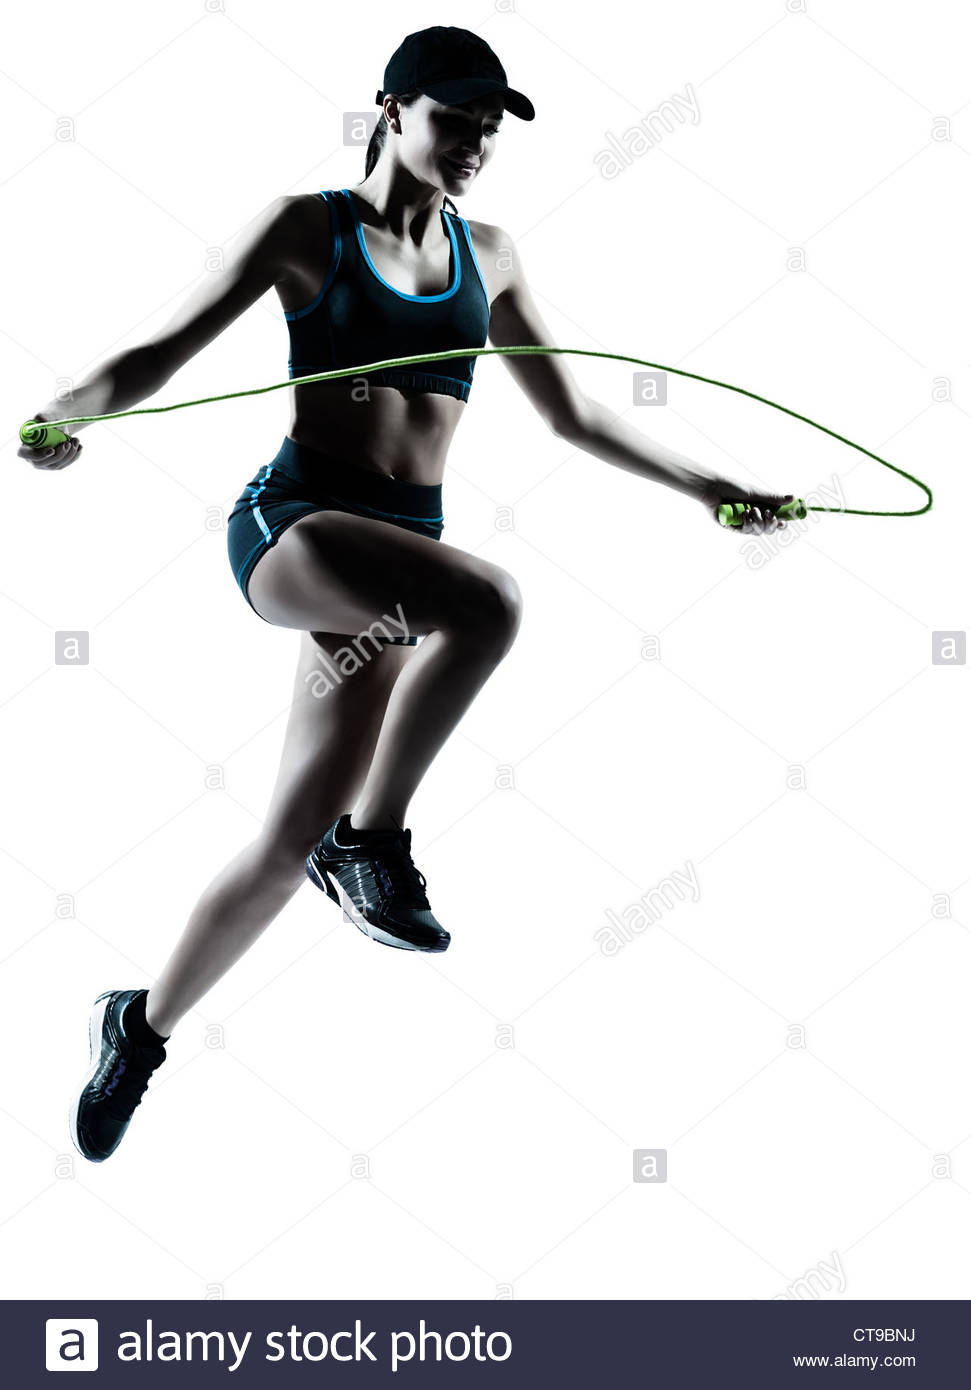 971x1390 One Caucasian Woman Runner Jogger Jumping Rope In Silhouette